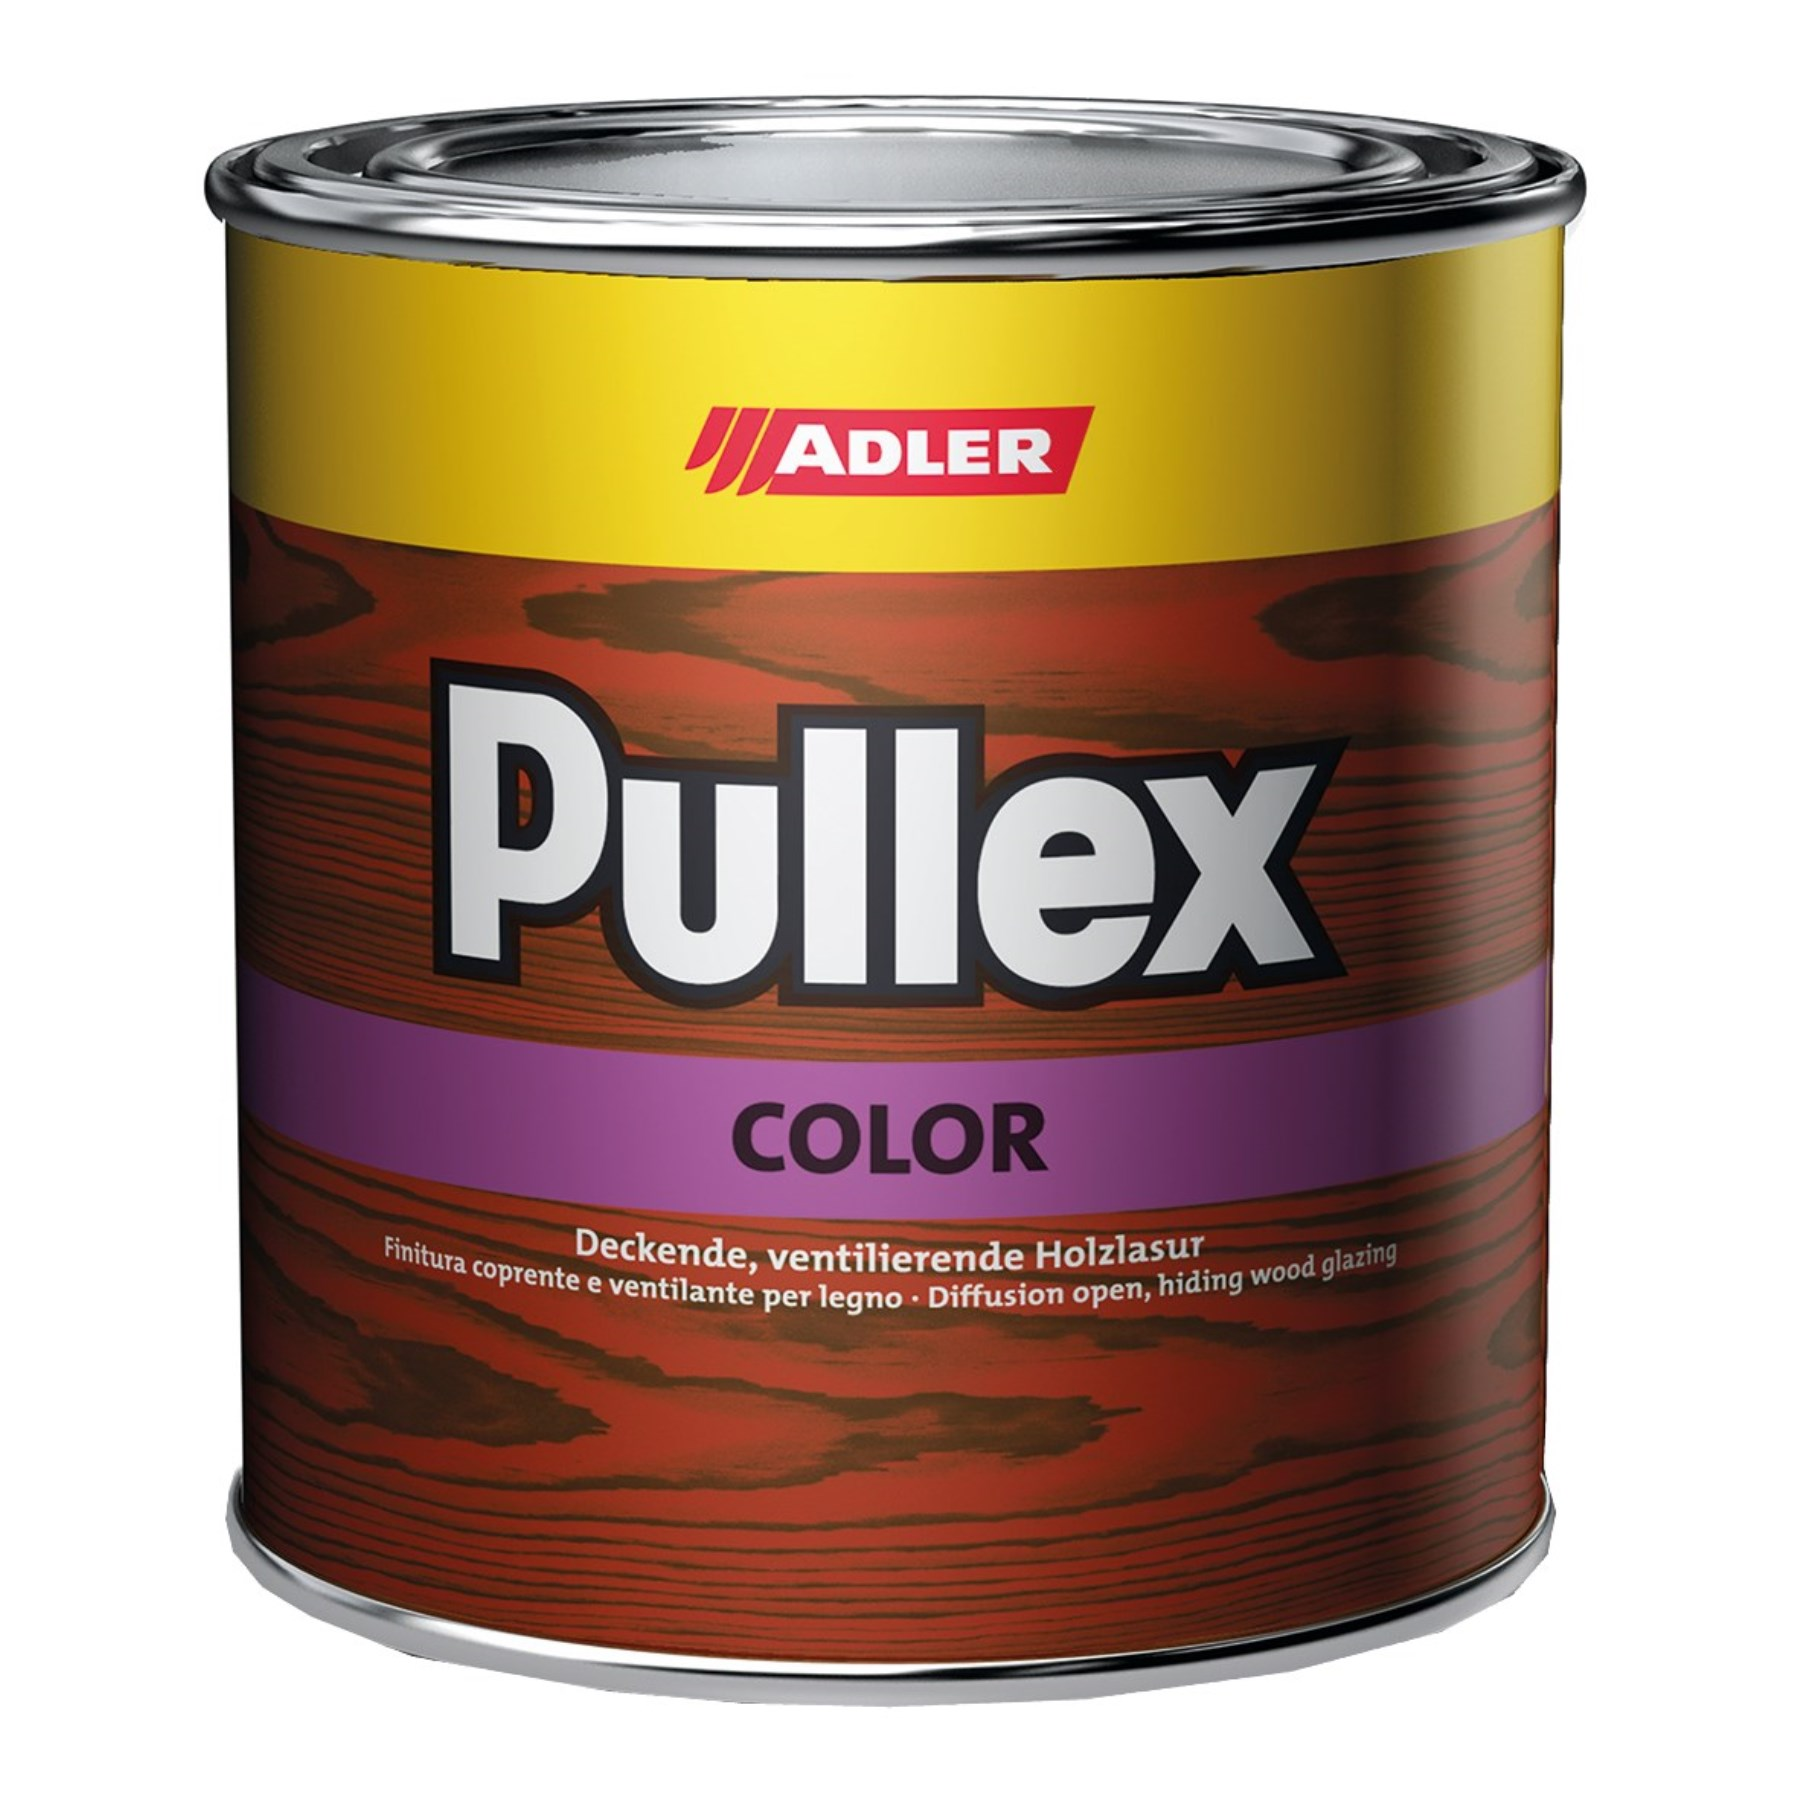 1132268 - Pullex Color rot 2,5L Basis zum Tönen